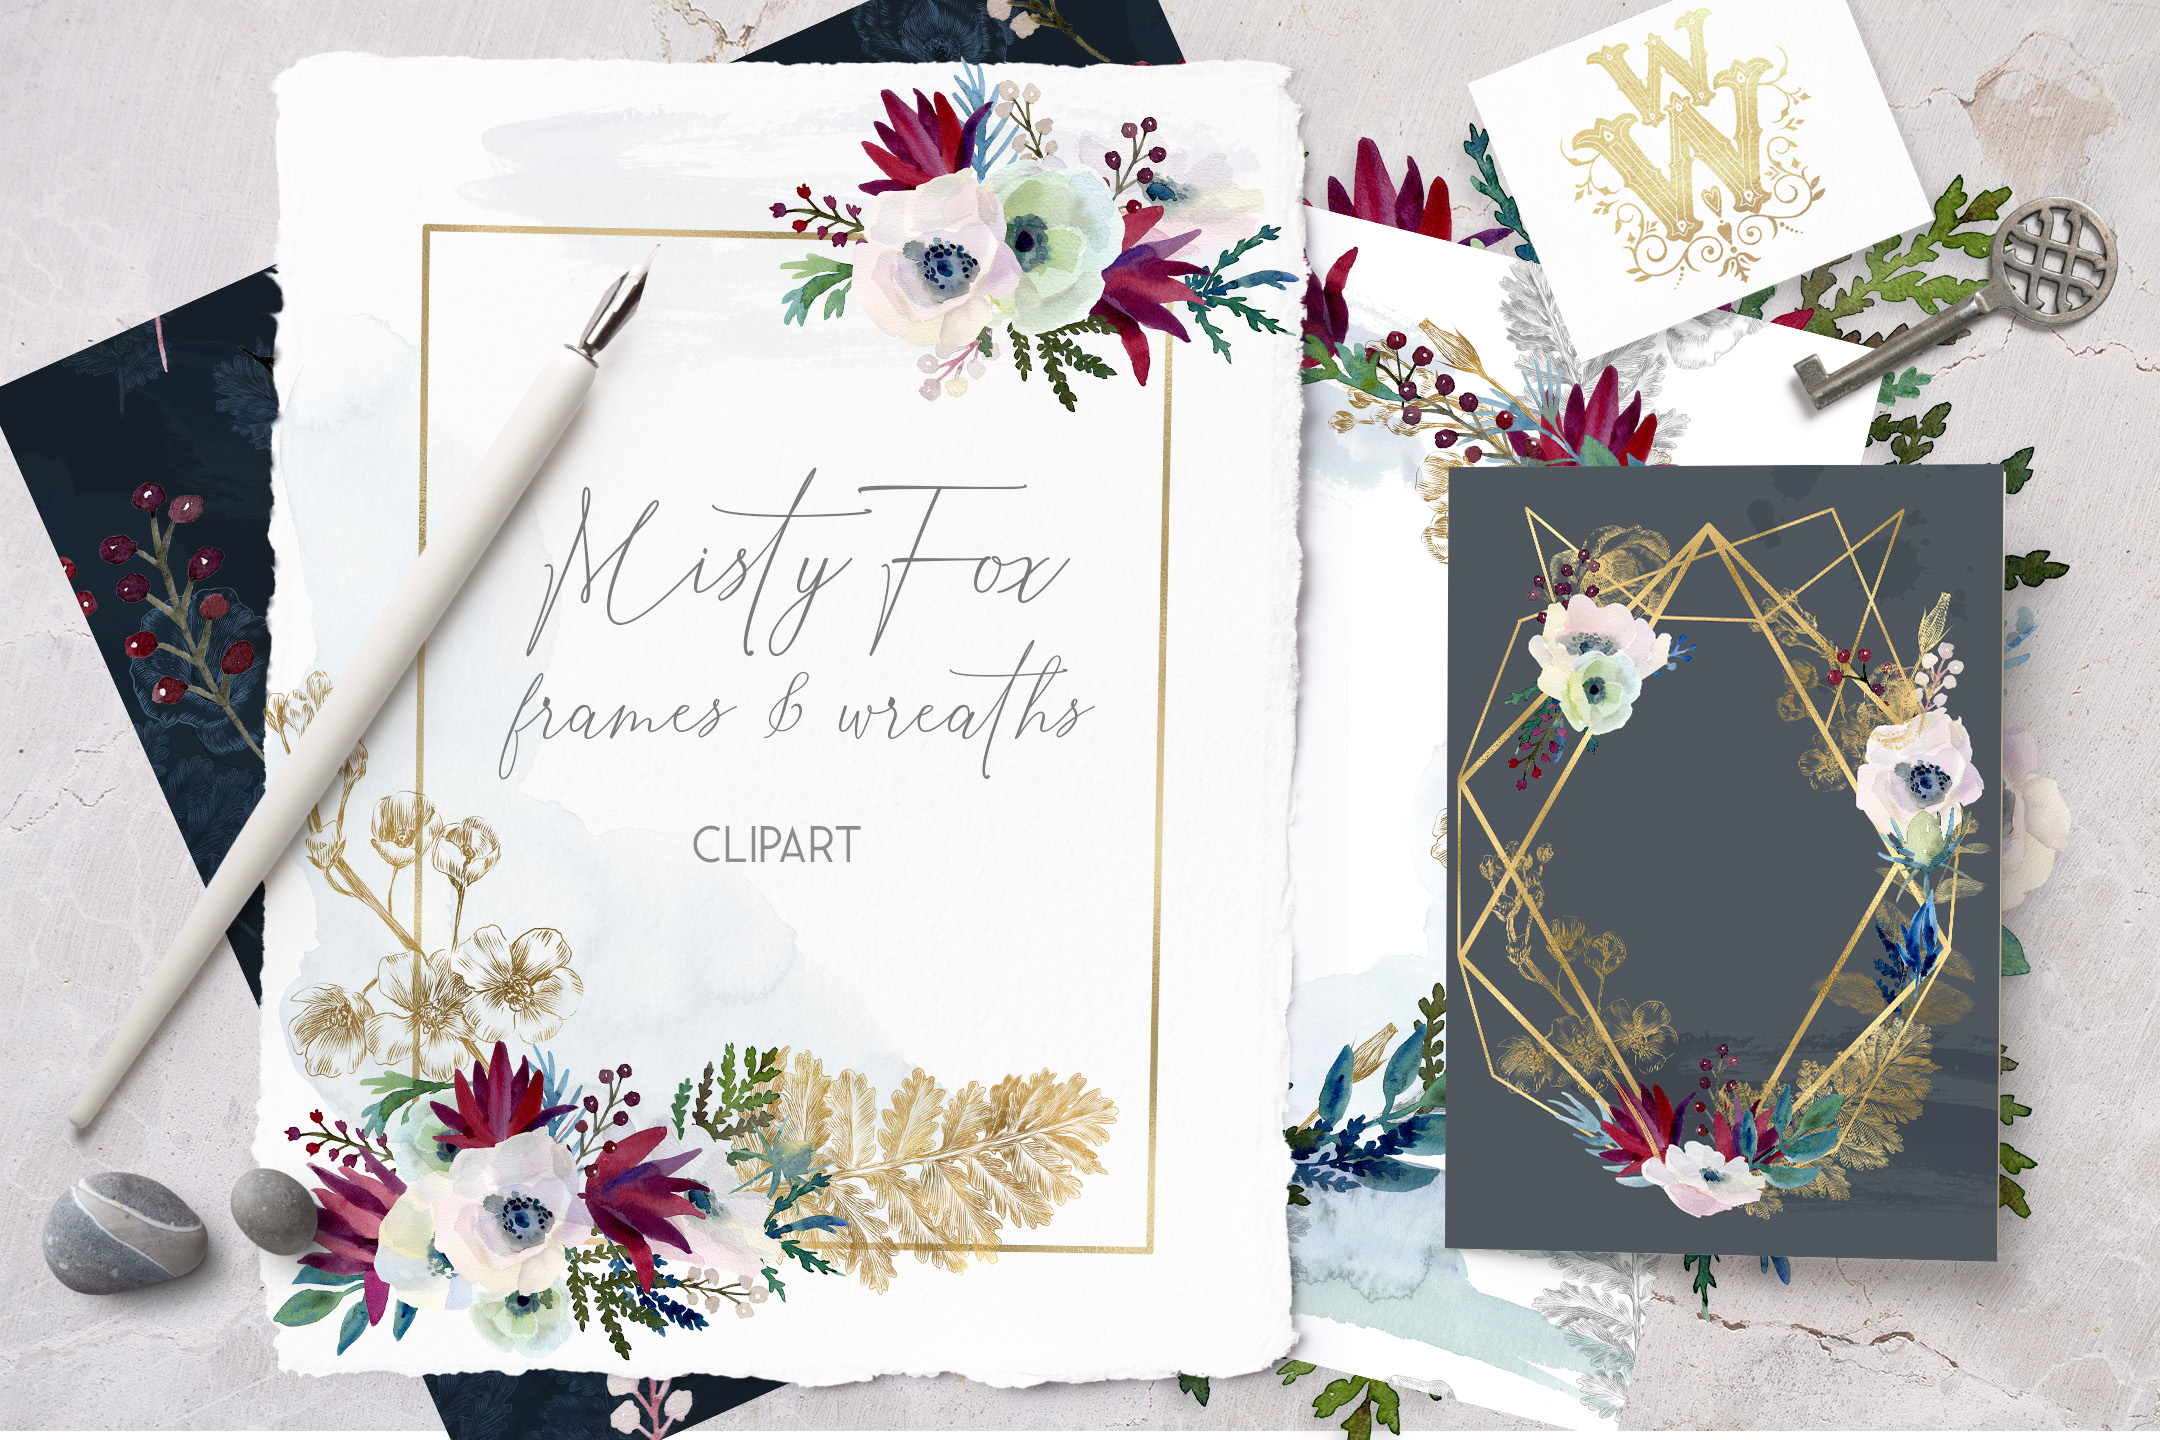 Watercolor white flowers frame, wedding wreath invitation example image 1